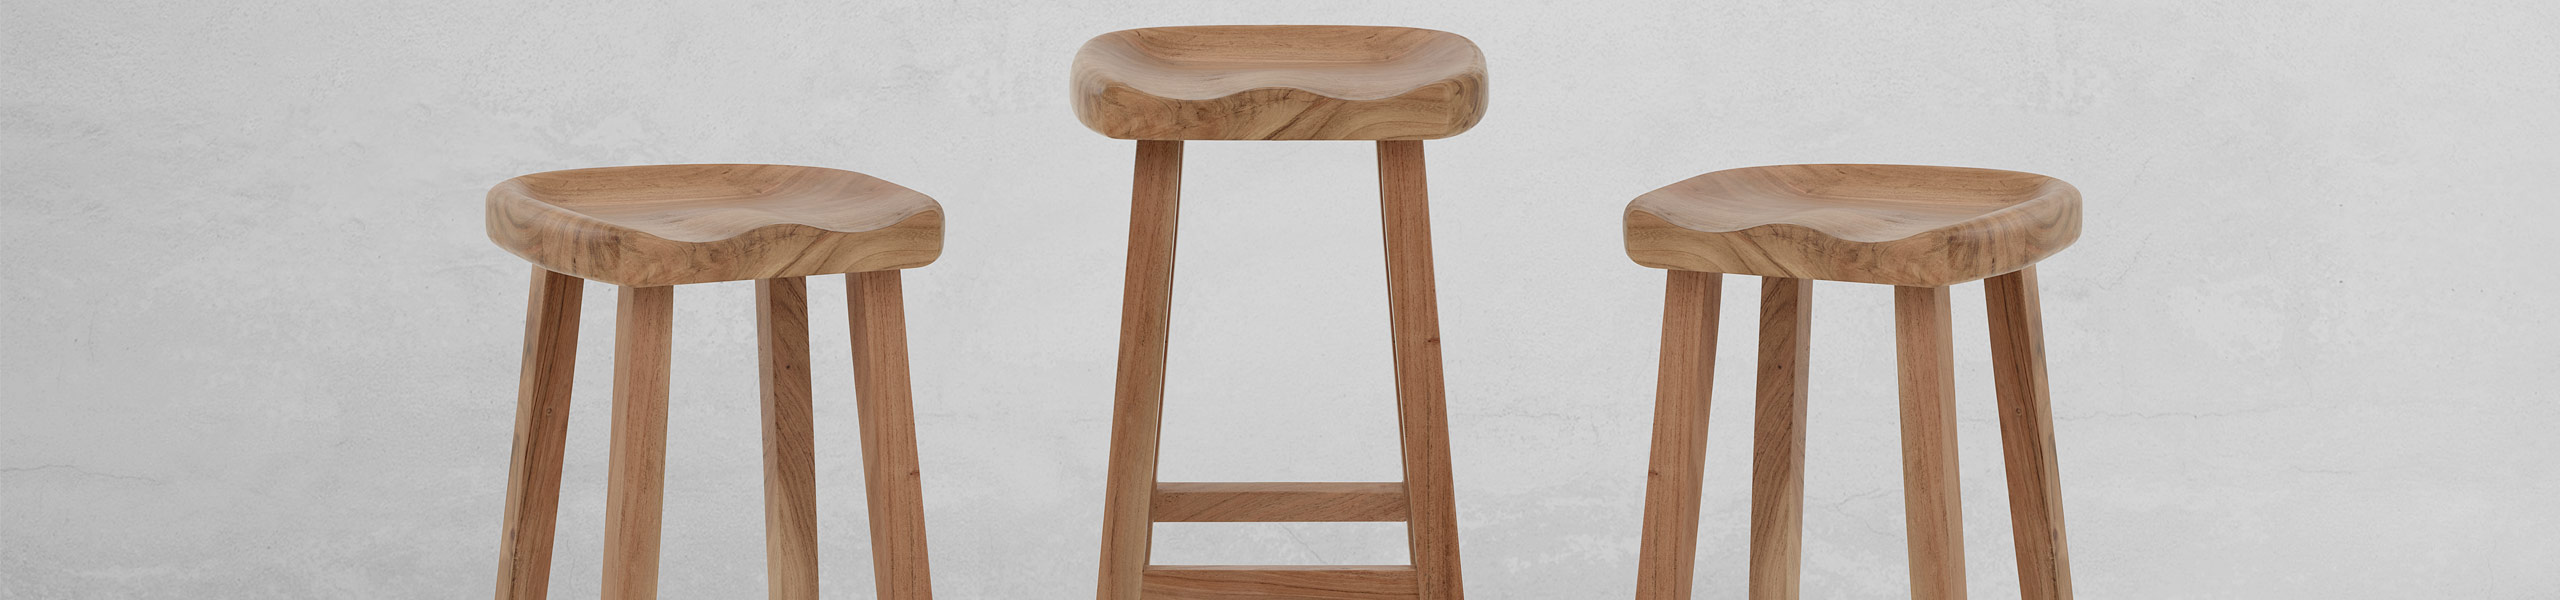 Jin Wooden Stool Video Banner